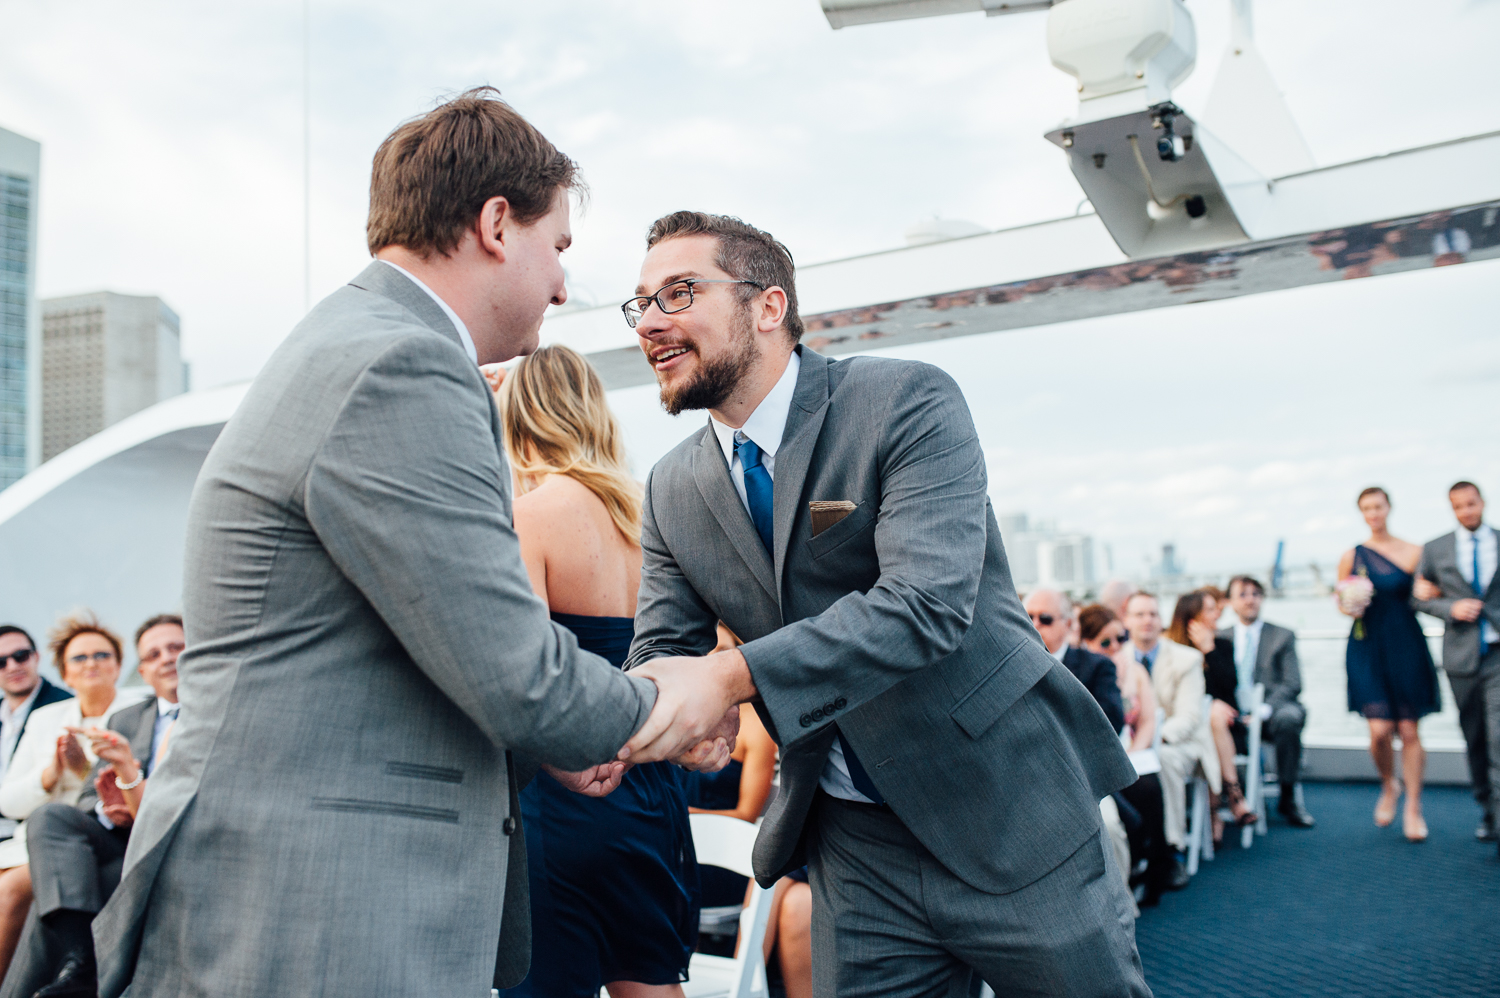 Jessenia Gonzalez Photography-The Biscayne Lady- Yacht-Downtown-Bayside-Wedding-Bridesmaids-groomsmen (13 of 103).jpg